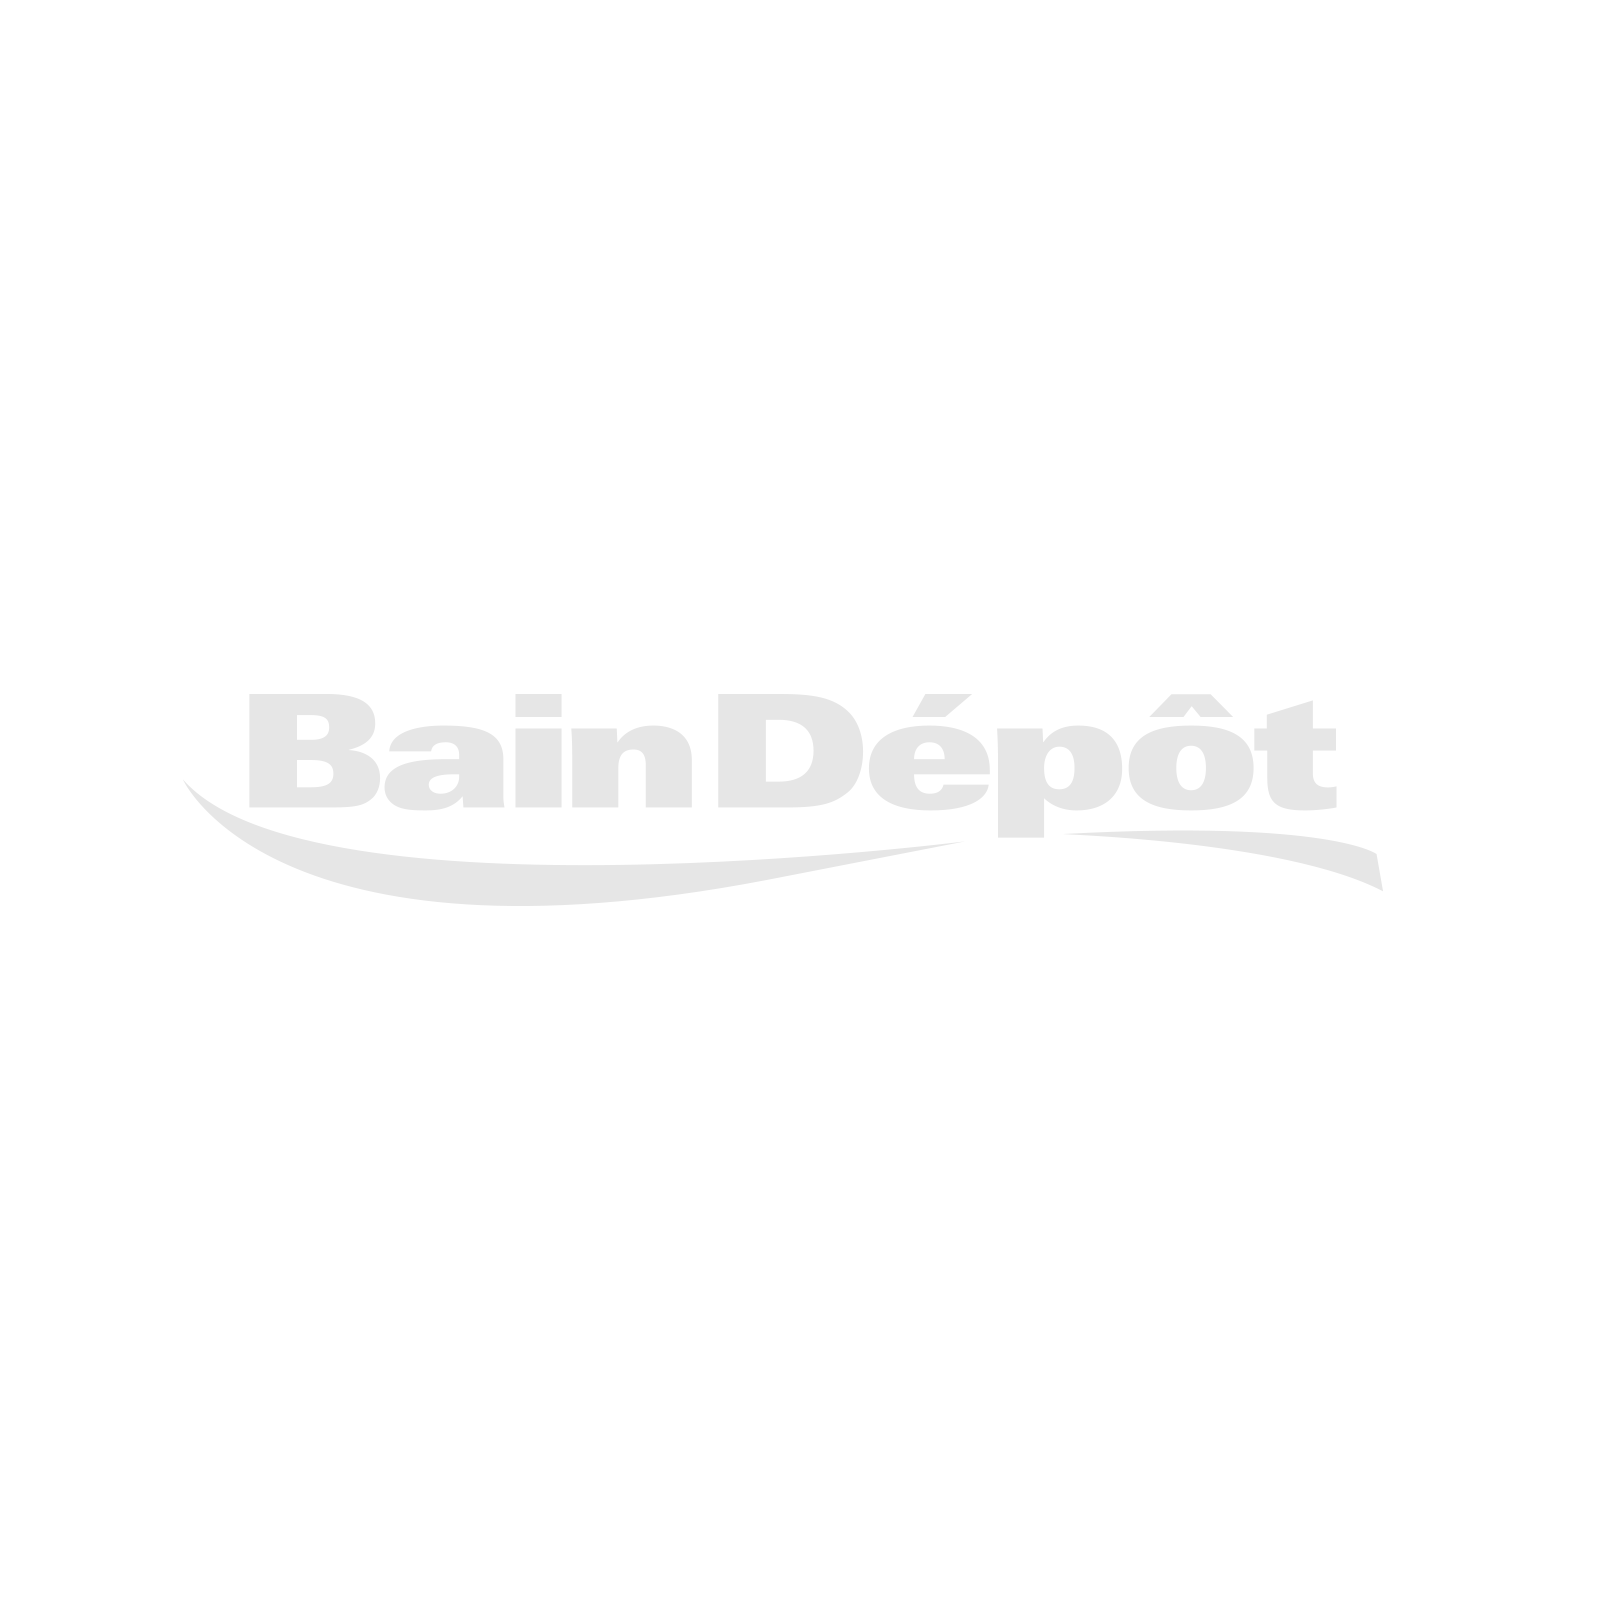 CAMICK one-piece dual-flush toilet with regular bowl